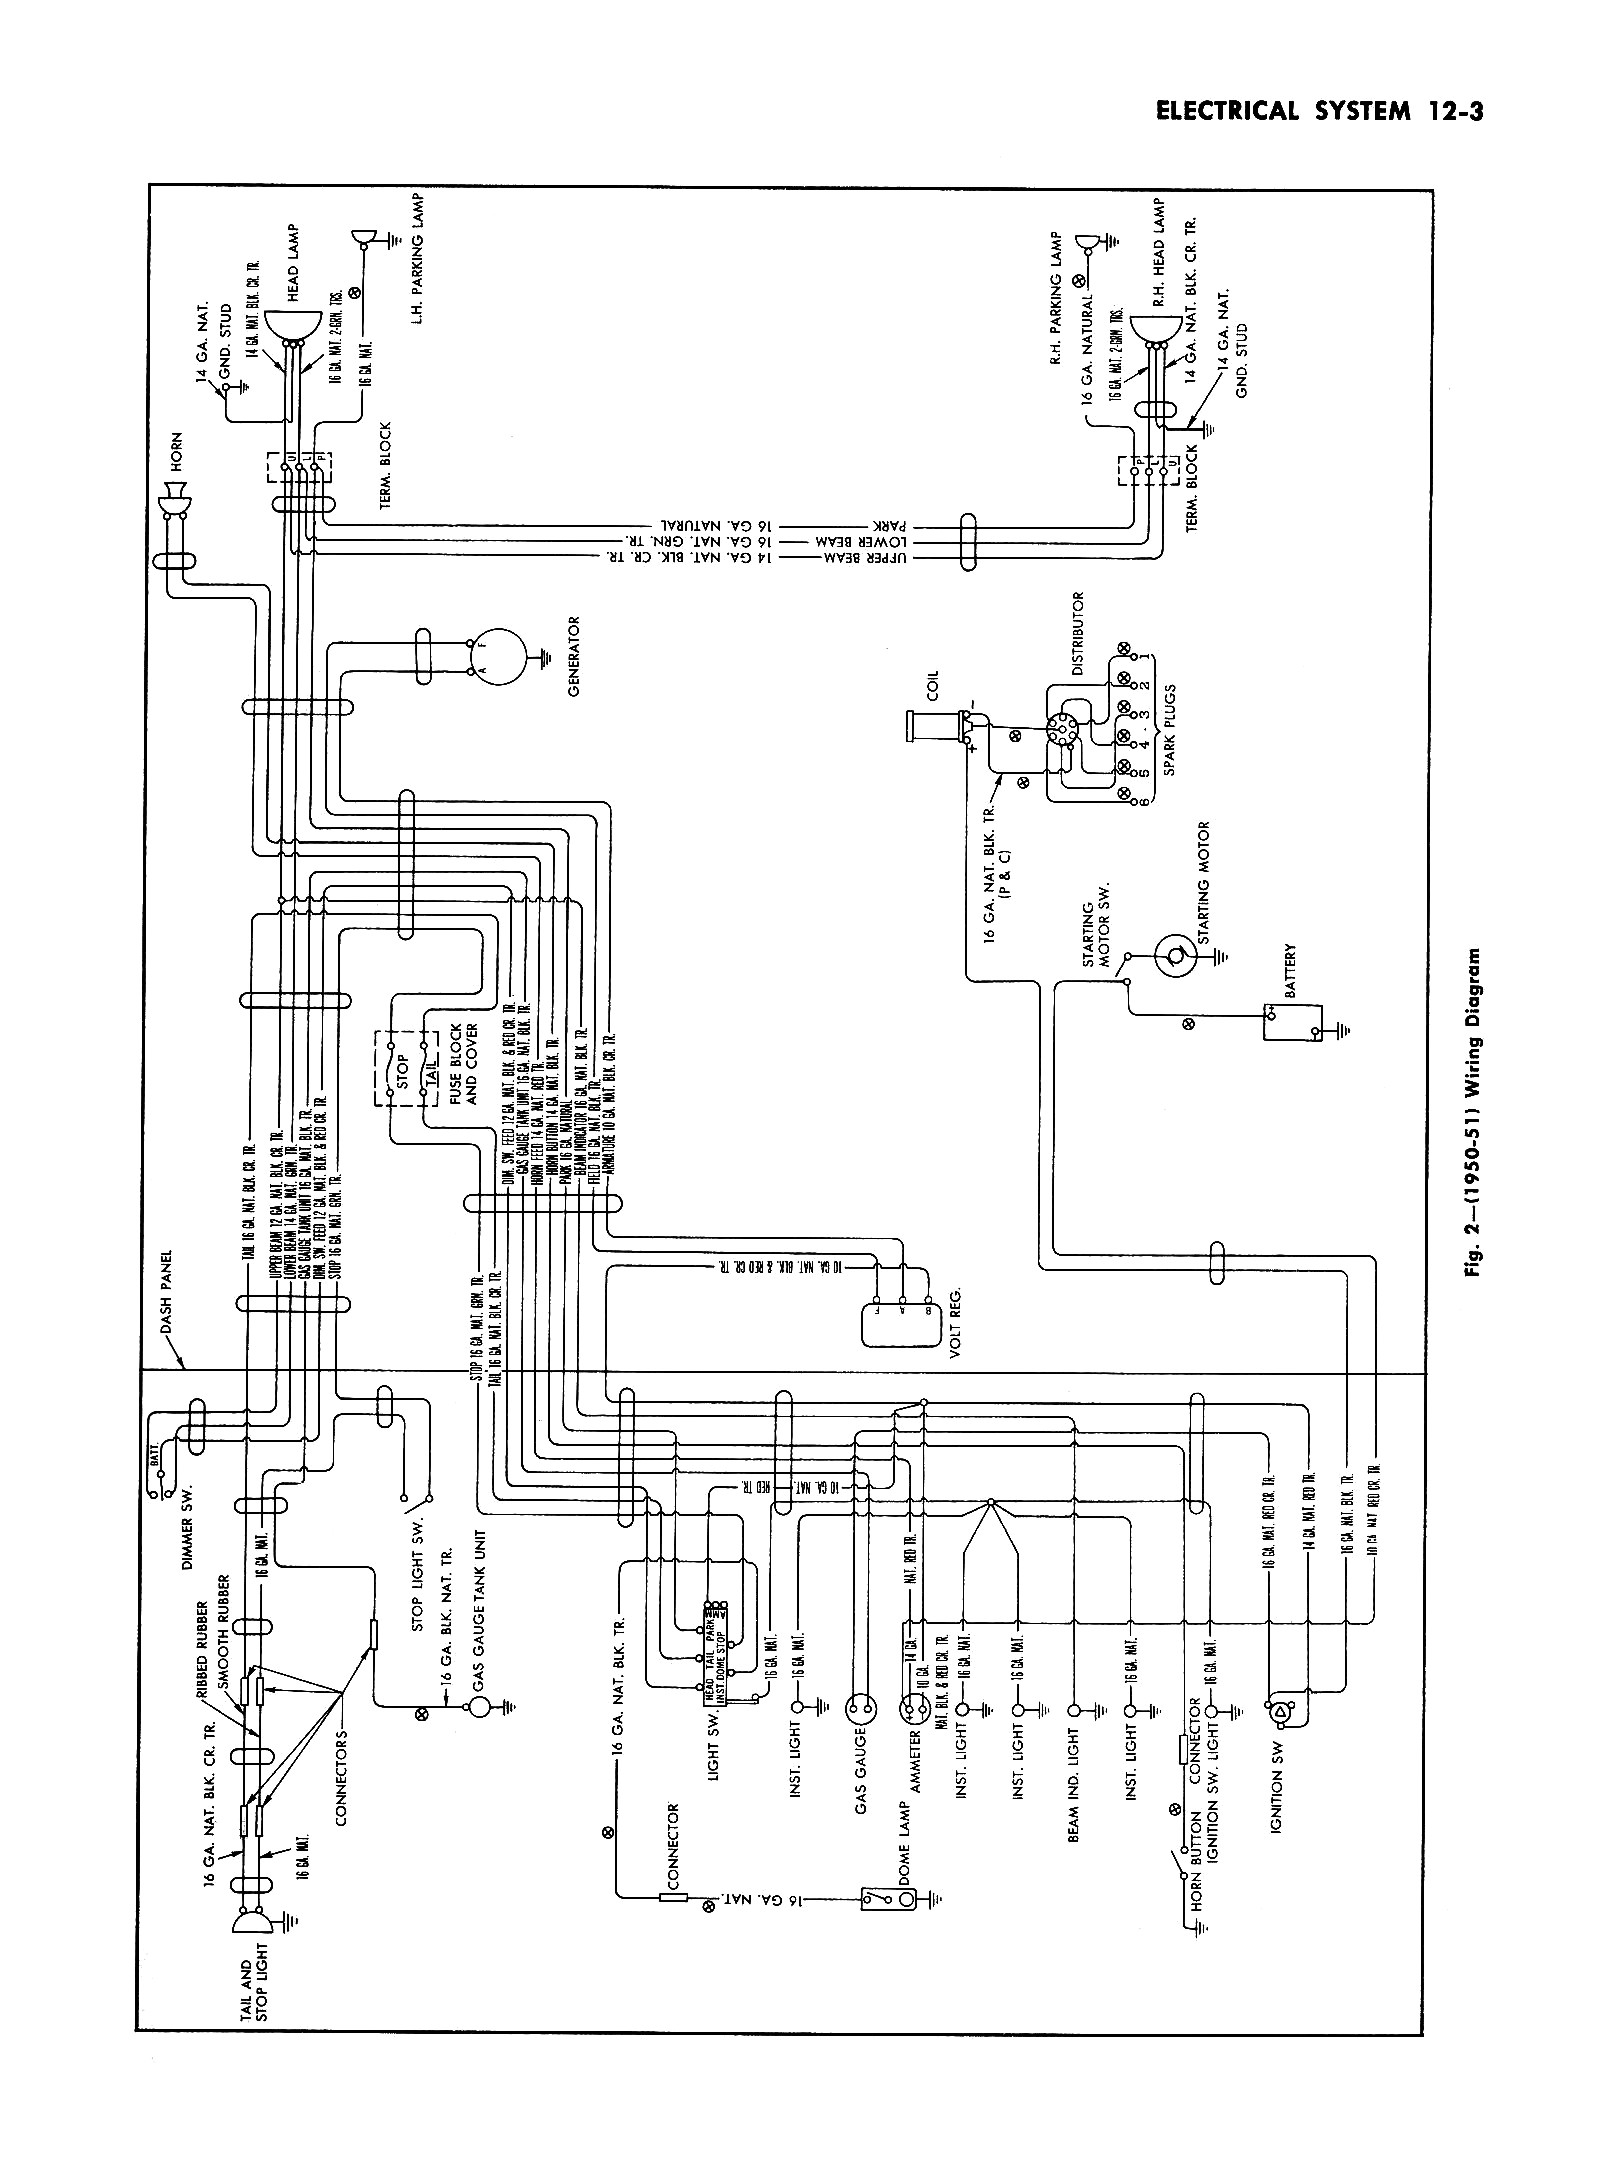 chevy wiring diagrams rh chevy oldcarmanualproject com 1953 Chevy Truck Wiring Diagram 89 Chevy Truck Wiring Diagram